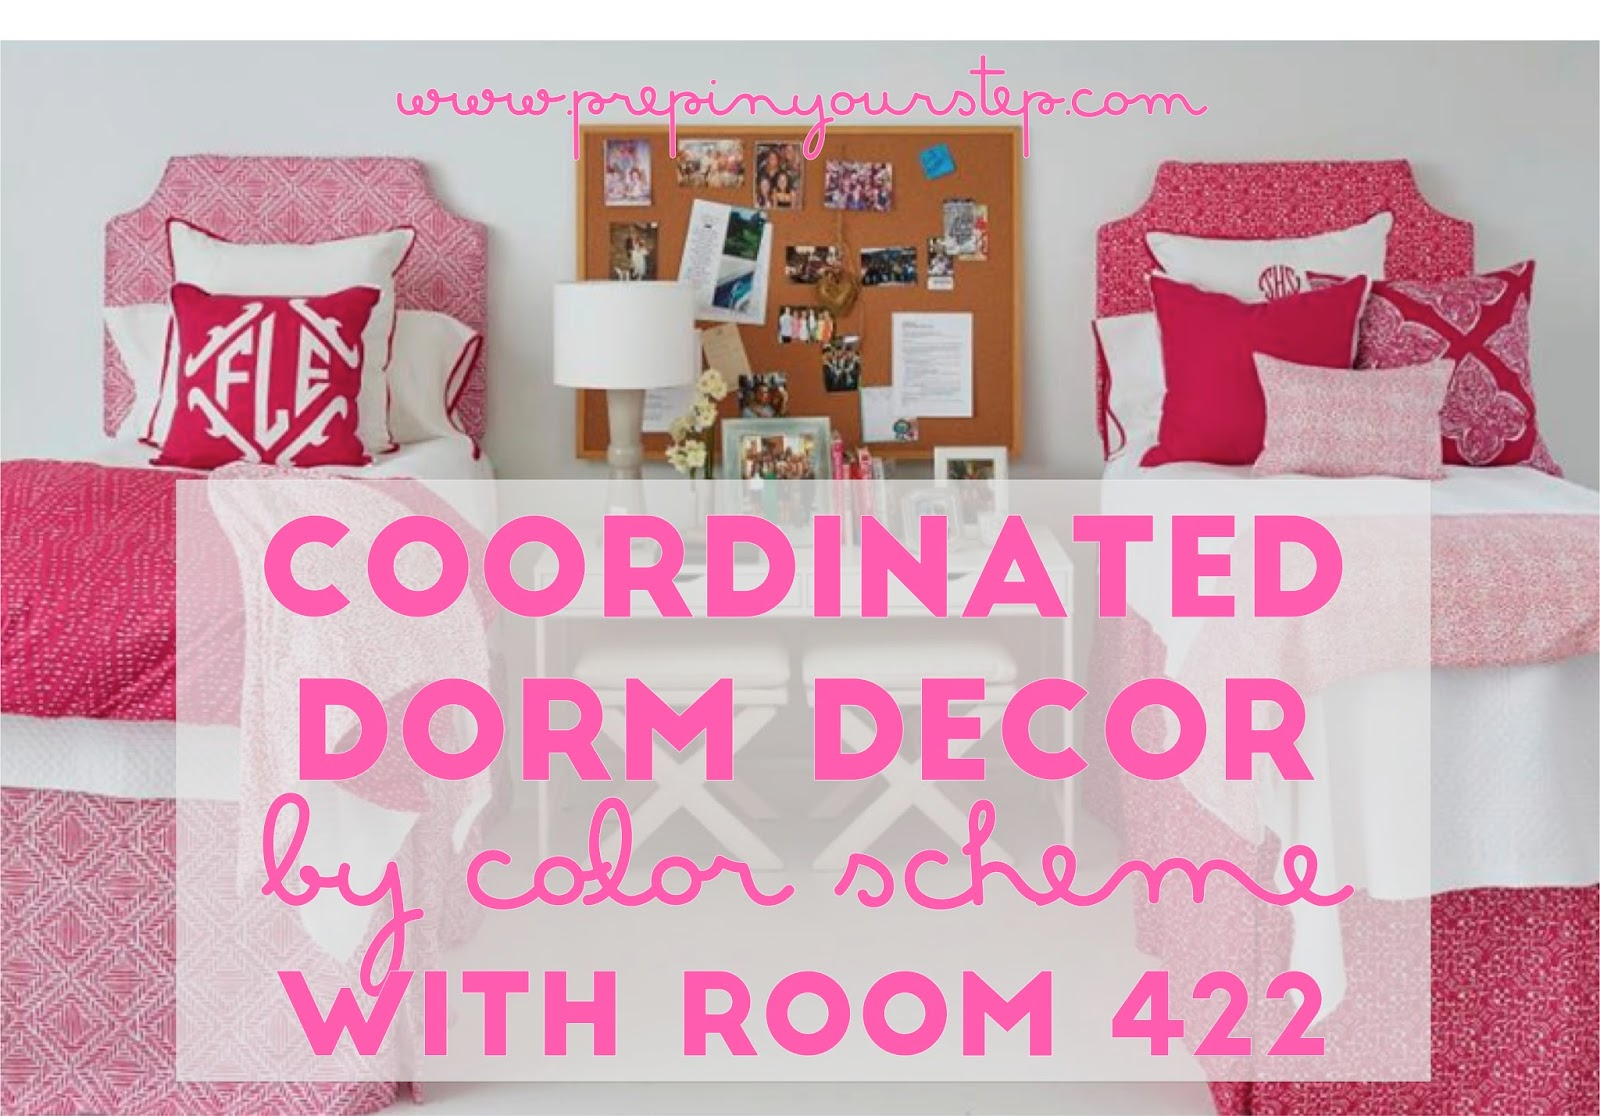 prep in your step coordinated dorm decor by color scheme